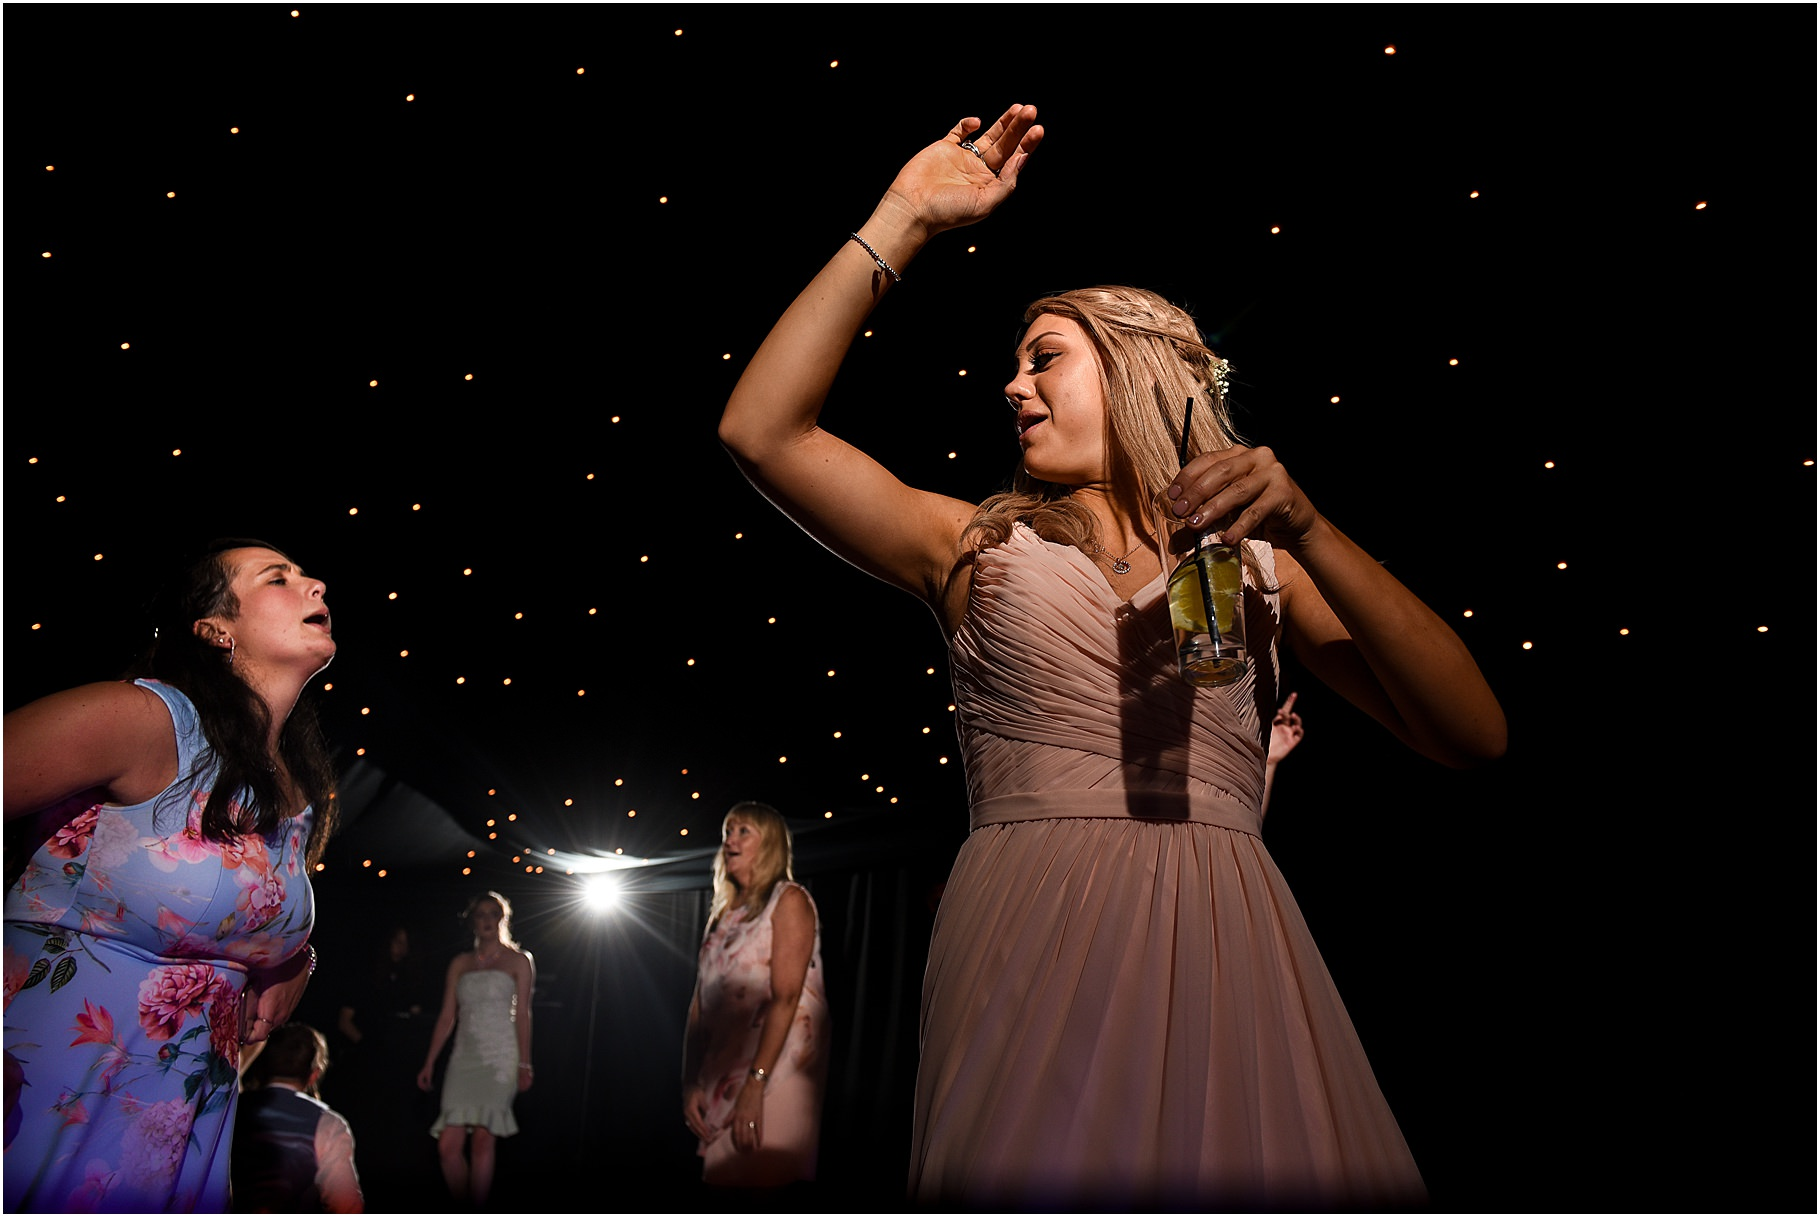 rossall-school-wedding-photography-106.jpg